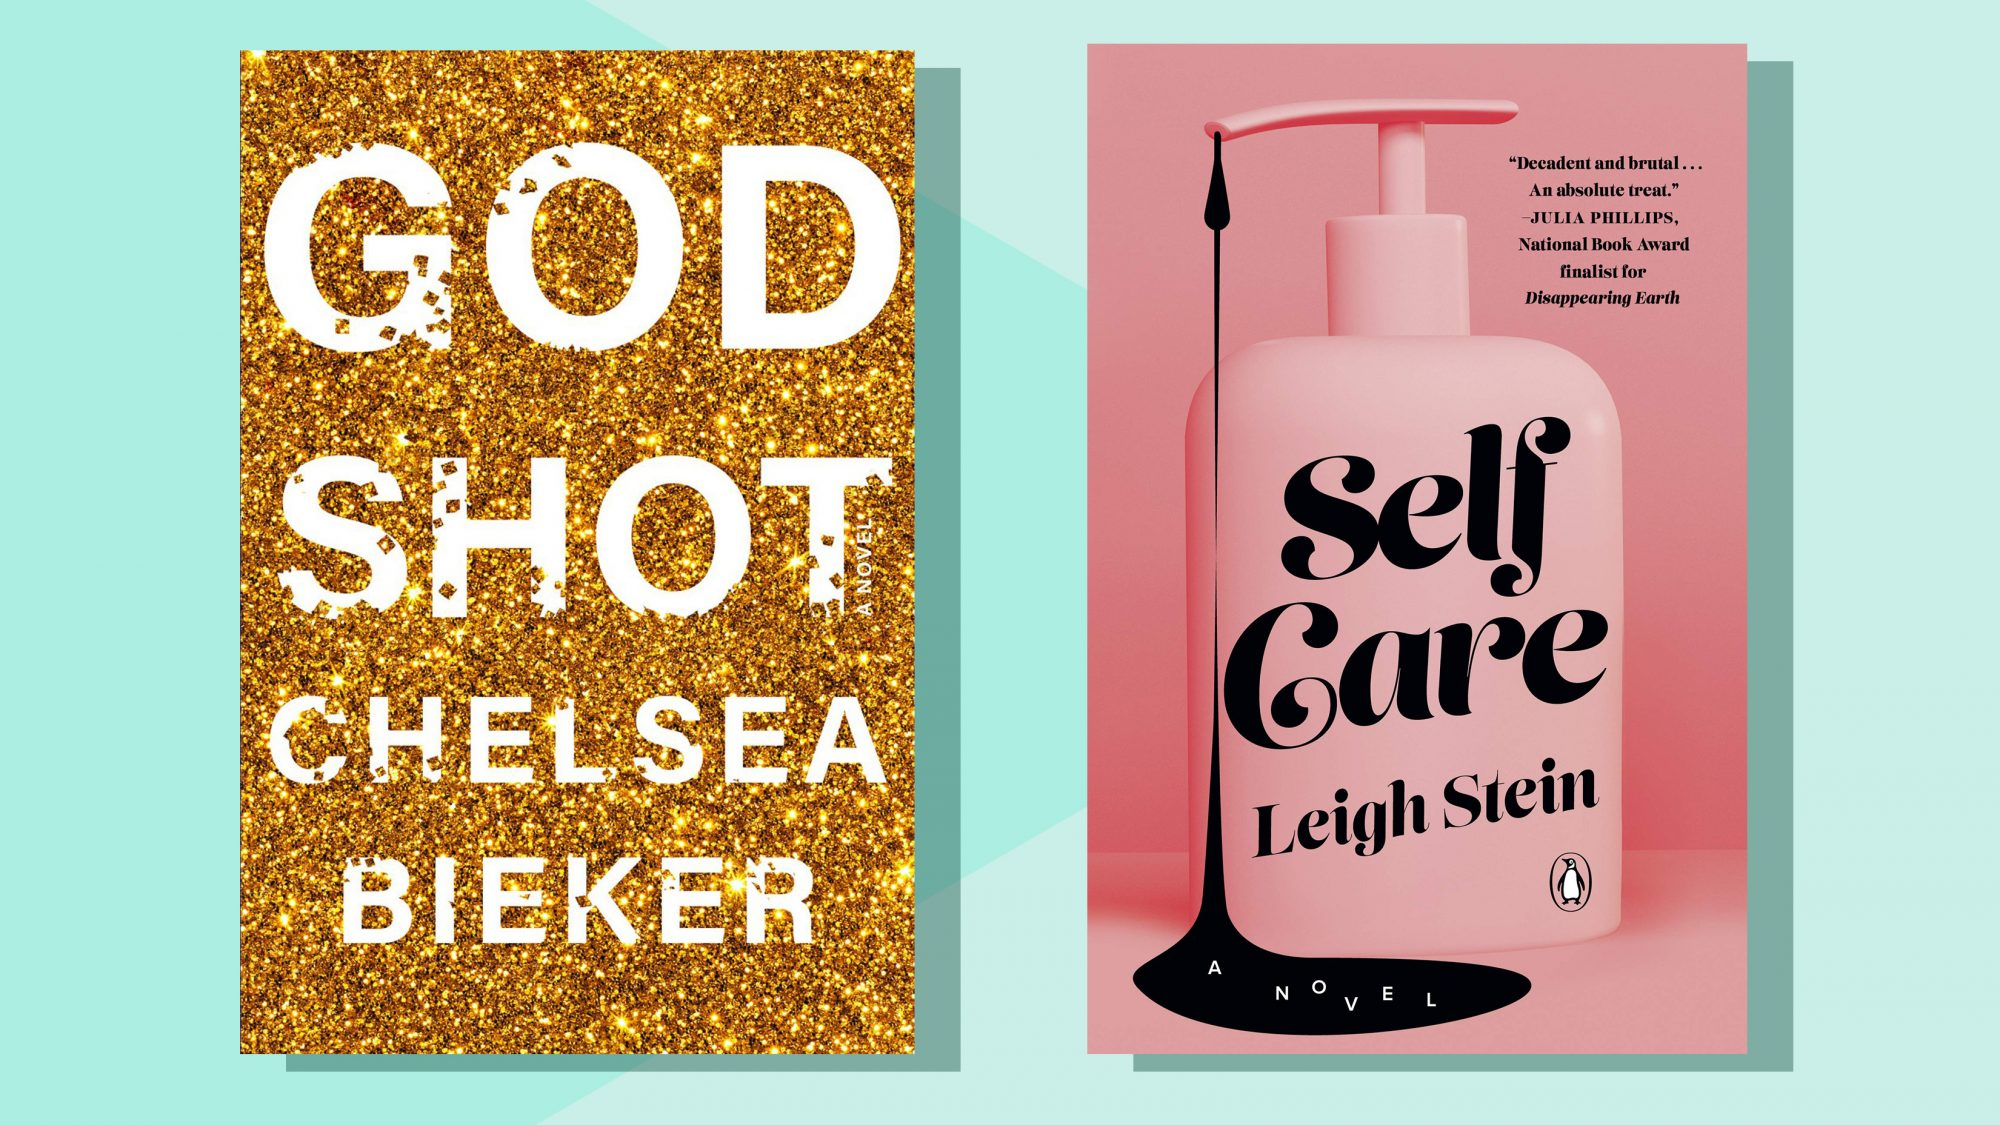 Godshot and Self Care book covers